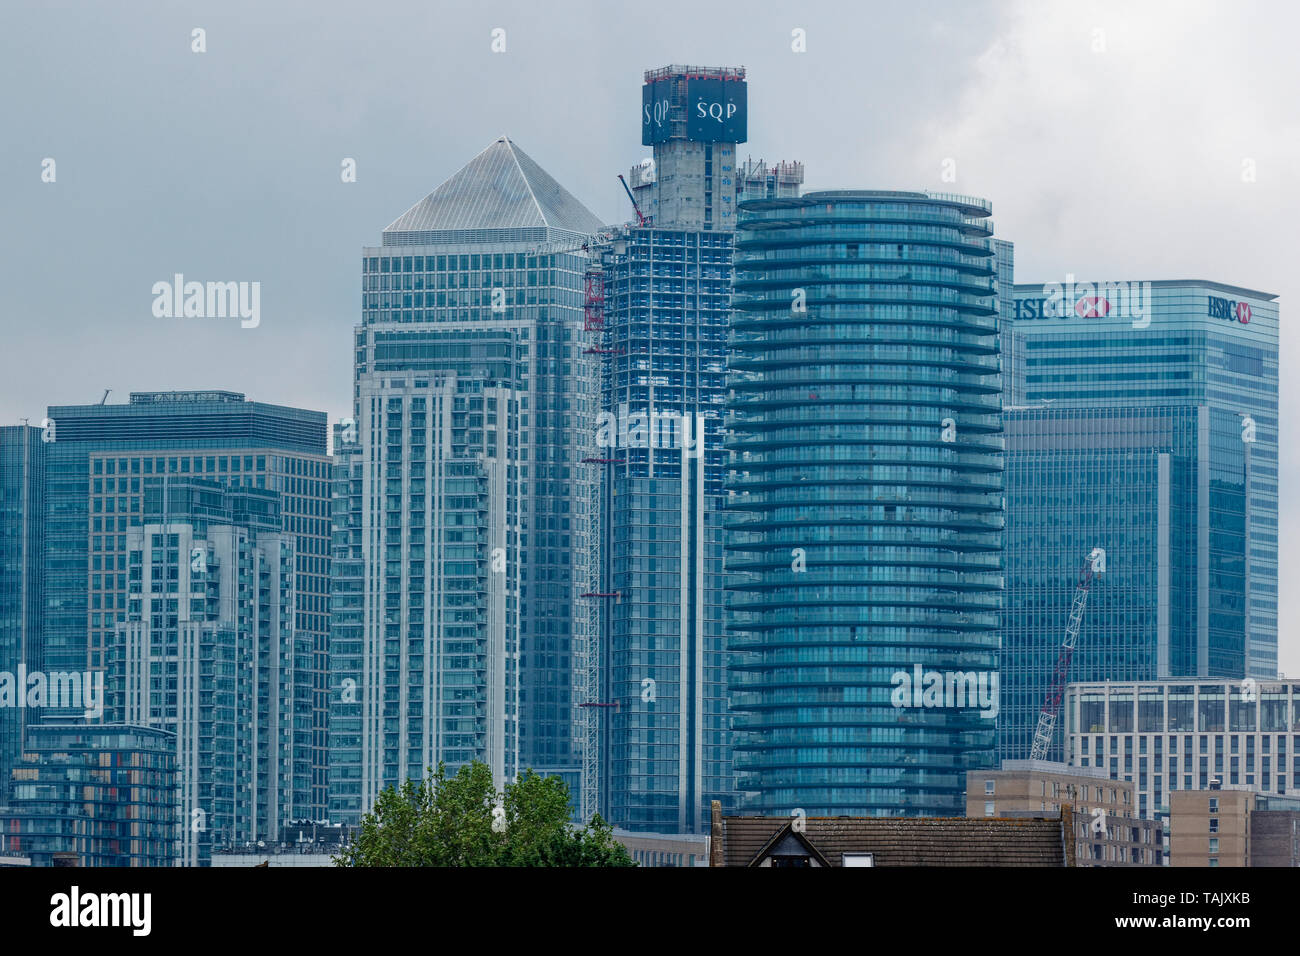 LONDON ISLE OF DOGS SKYSCRAPERS OF CANARY WHARF CONTINUOUS BUILDING DEVELOPMENT - Stock Image